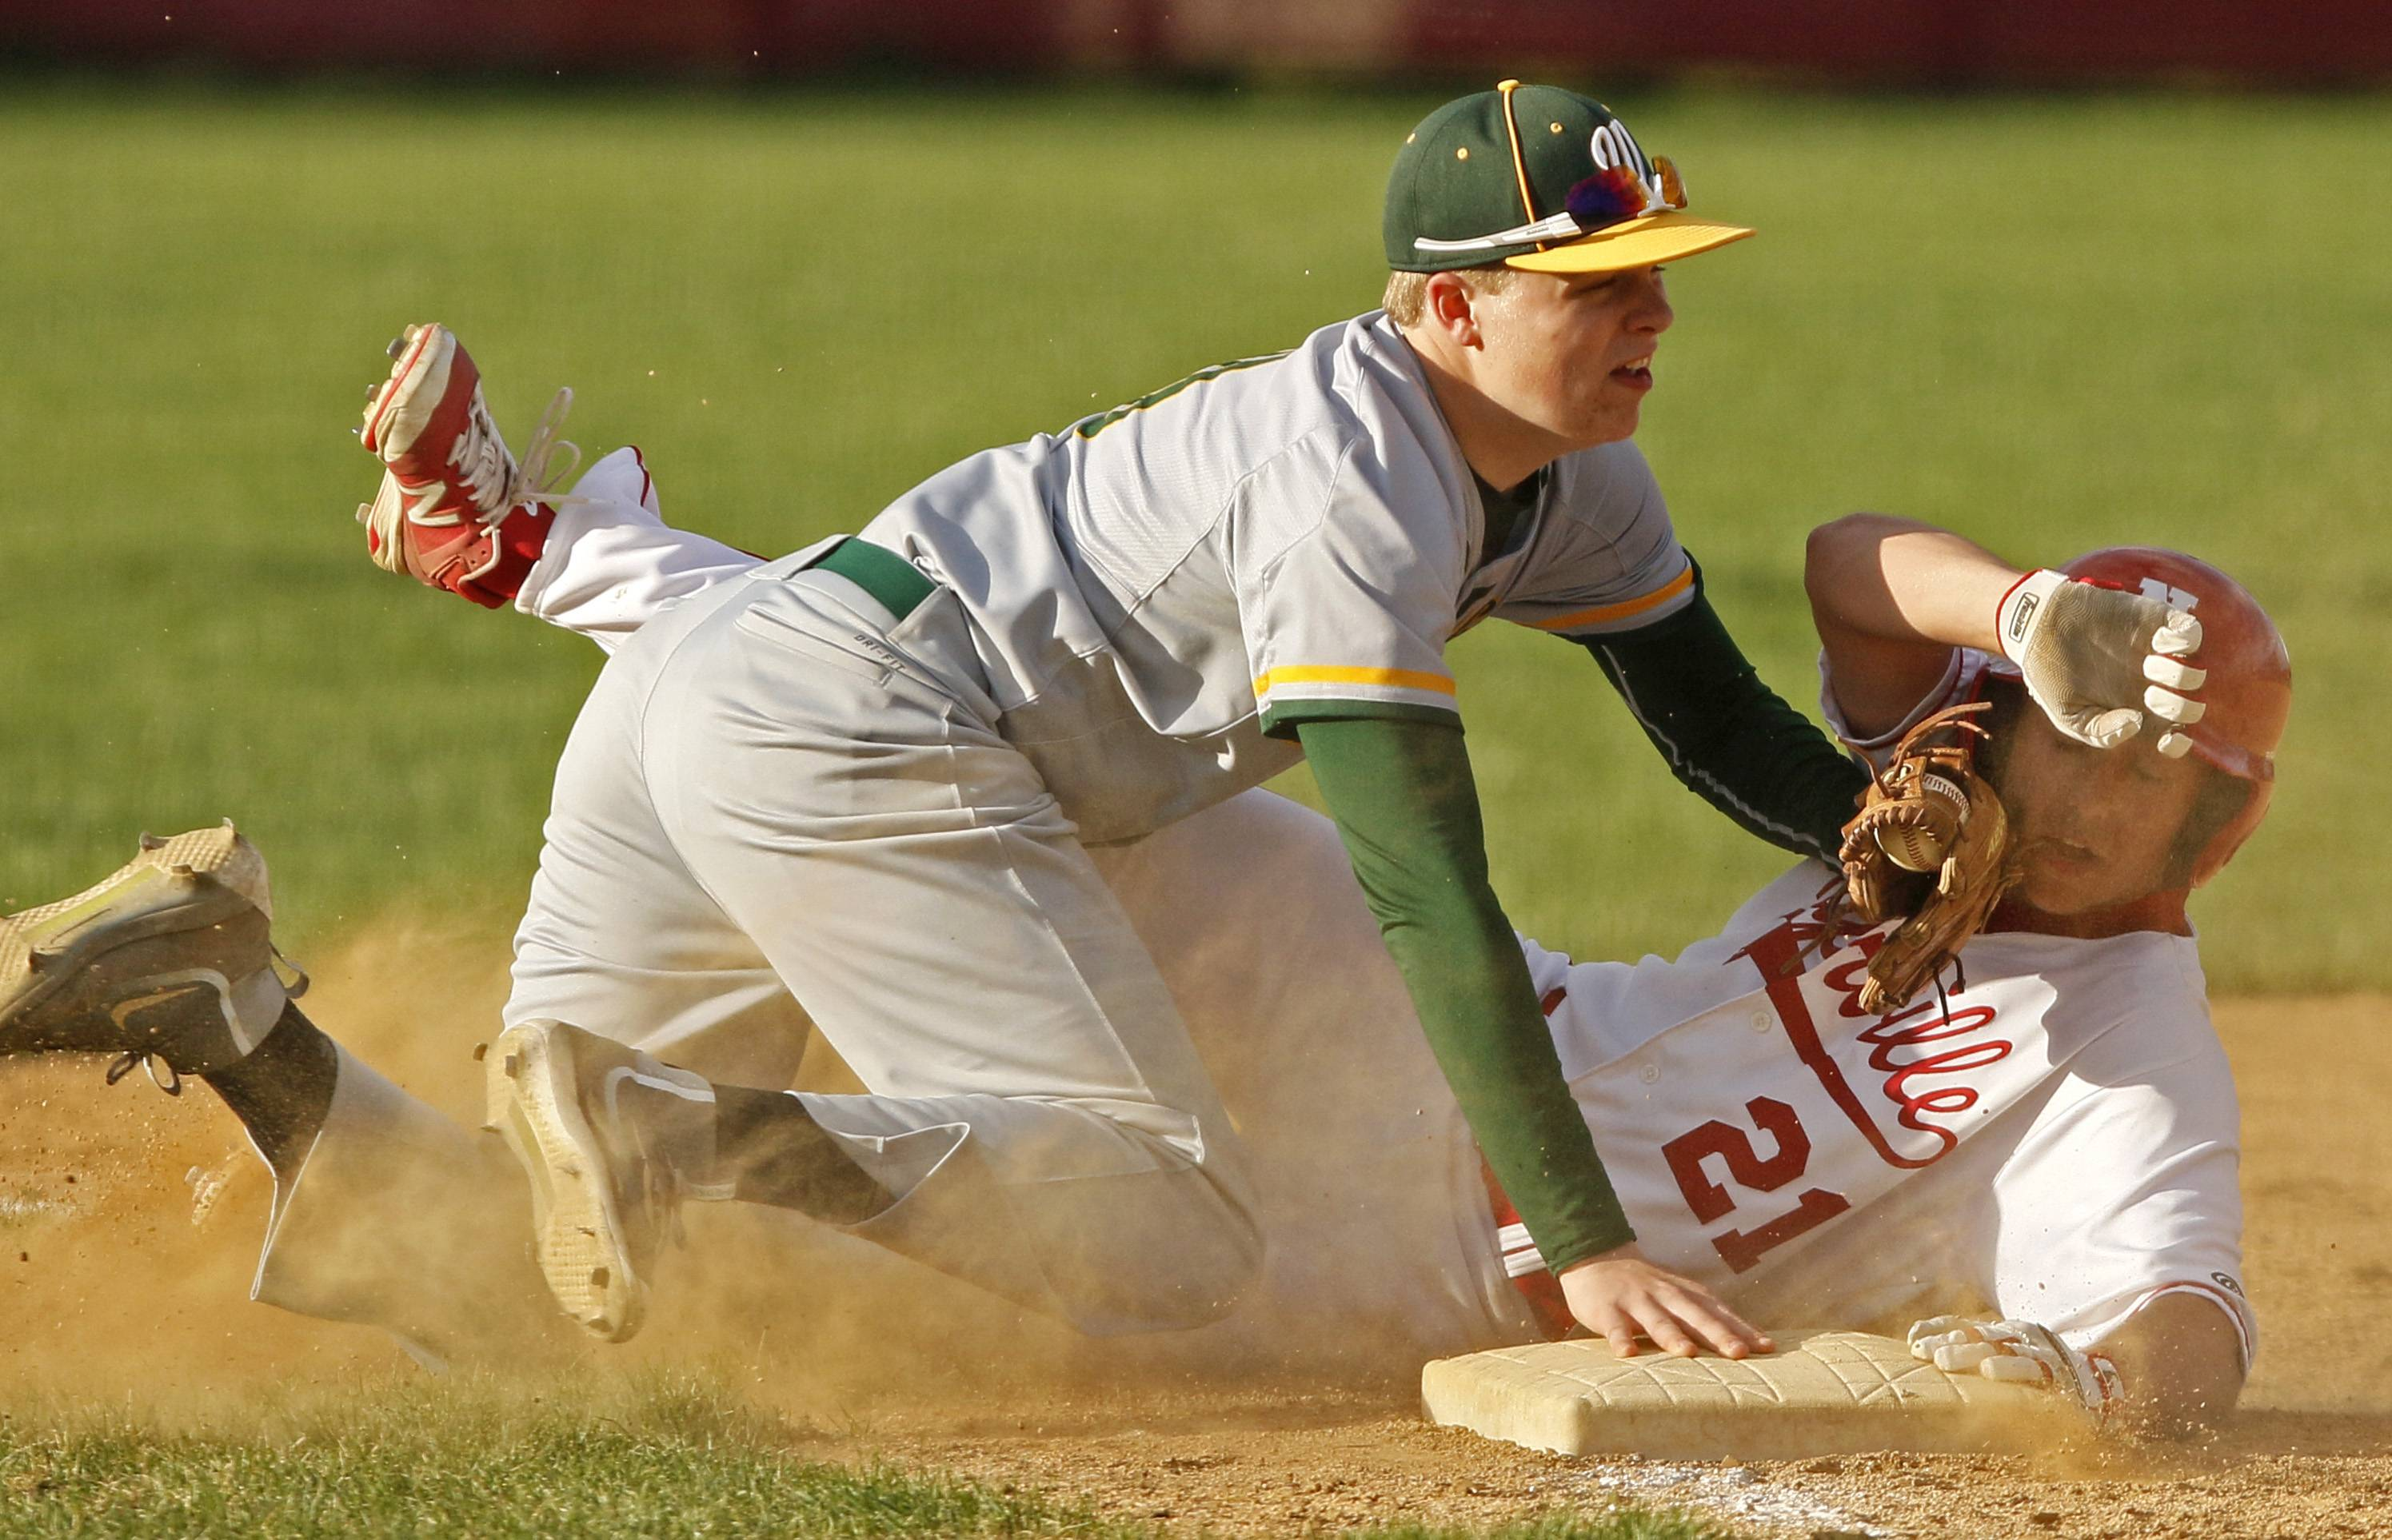 Waubonsie Valley third baseman Jacob Vandrie tags out Naperville Central's Joshua Boomgarden (21).